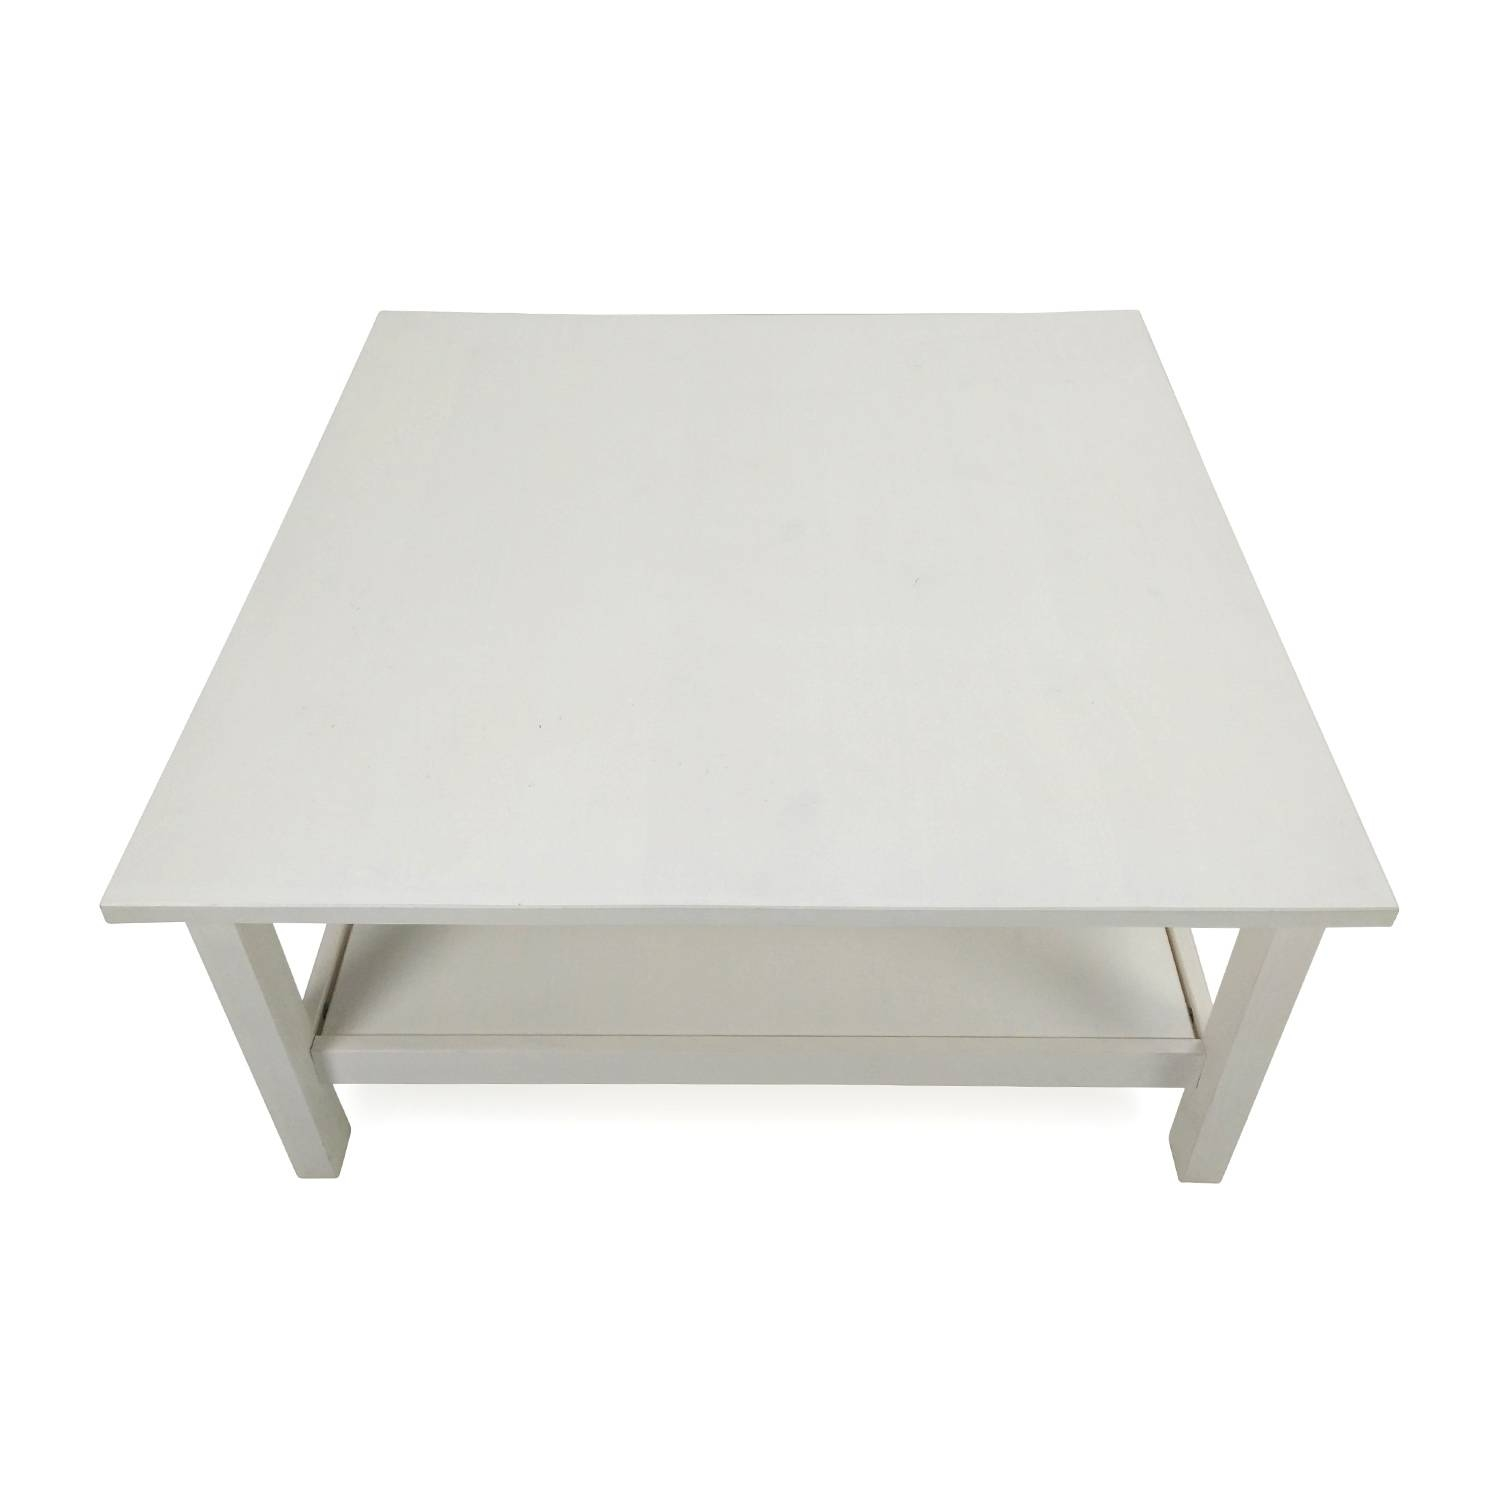 60% Off - Unknown Brand Antique Glass Coffee Table / Tables with regard to Retro Glass Coffee Tables (Image 1 of 30)